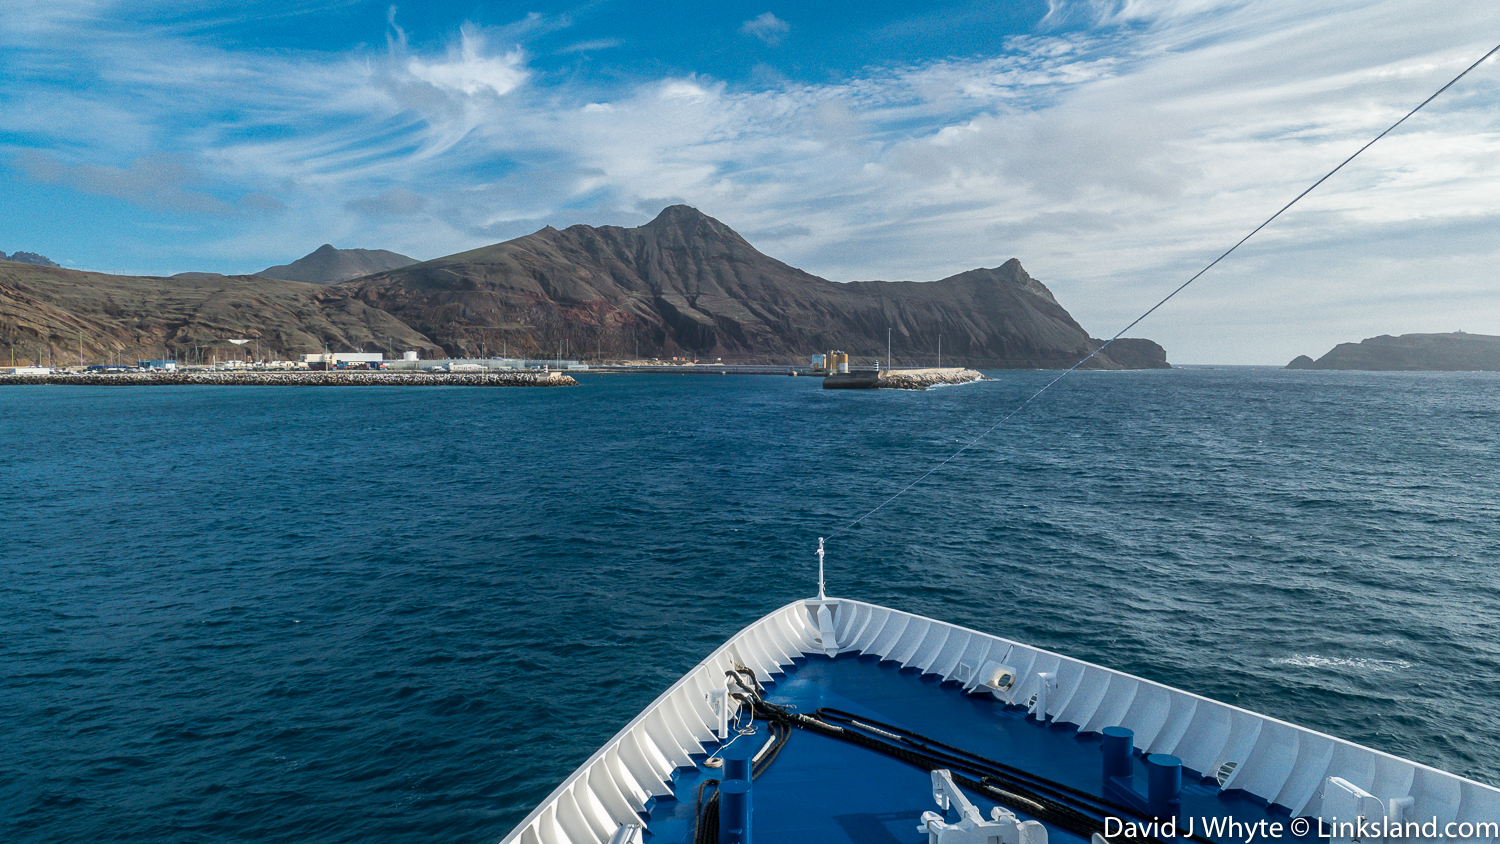 Approaching the harbour and island of Porto Santo.